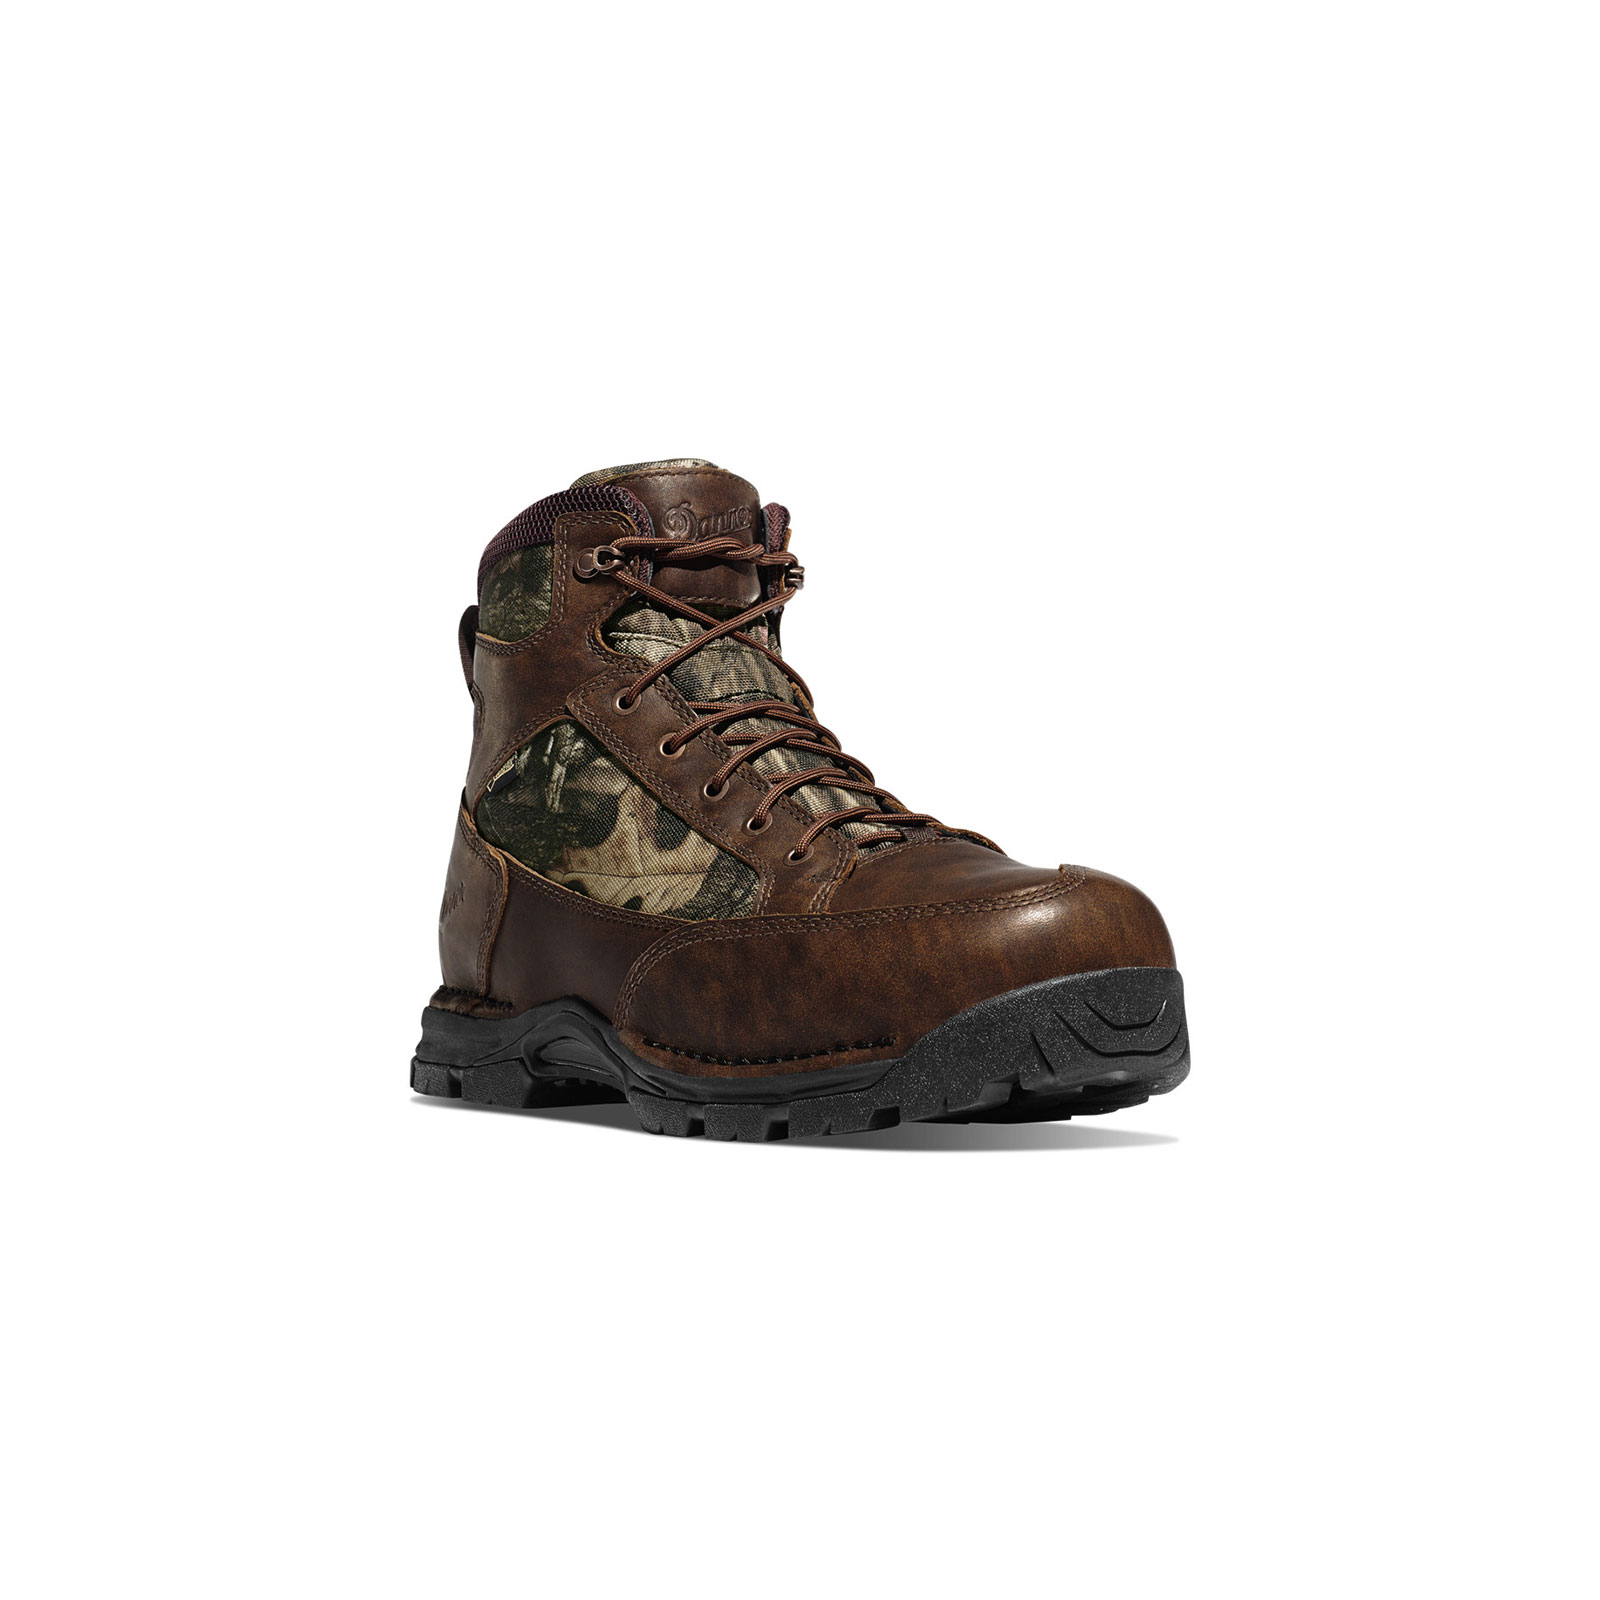 Danner Mens Pronghorn MOBUI Leather Hunting Boots 45001 by Danner